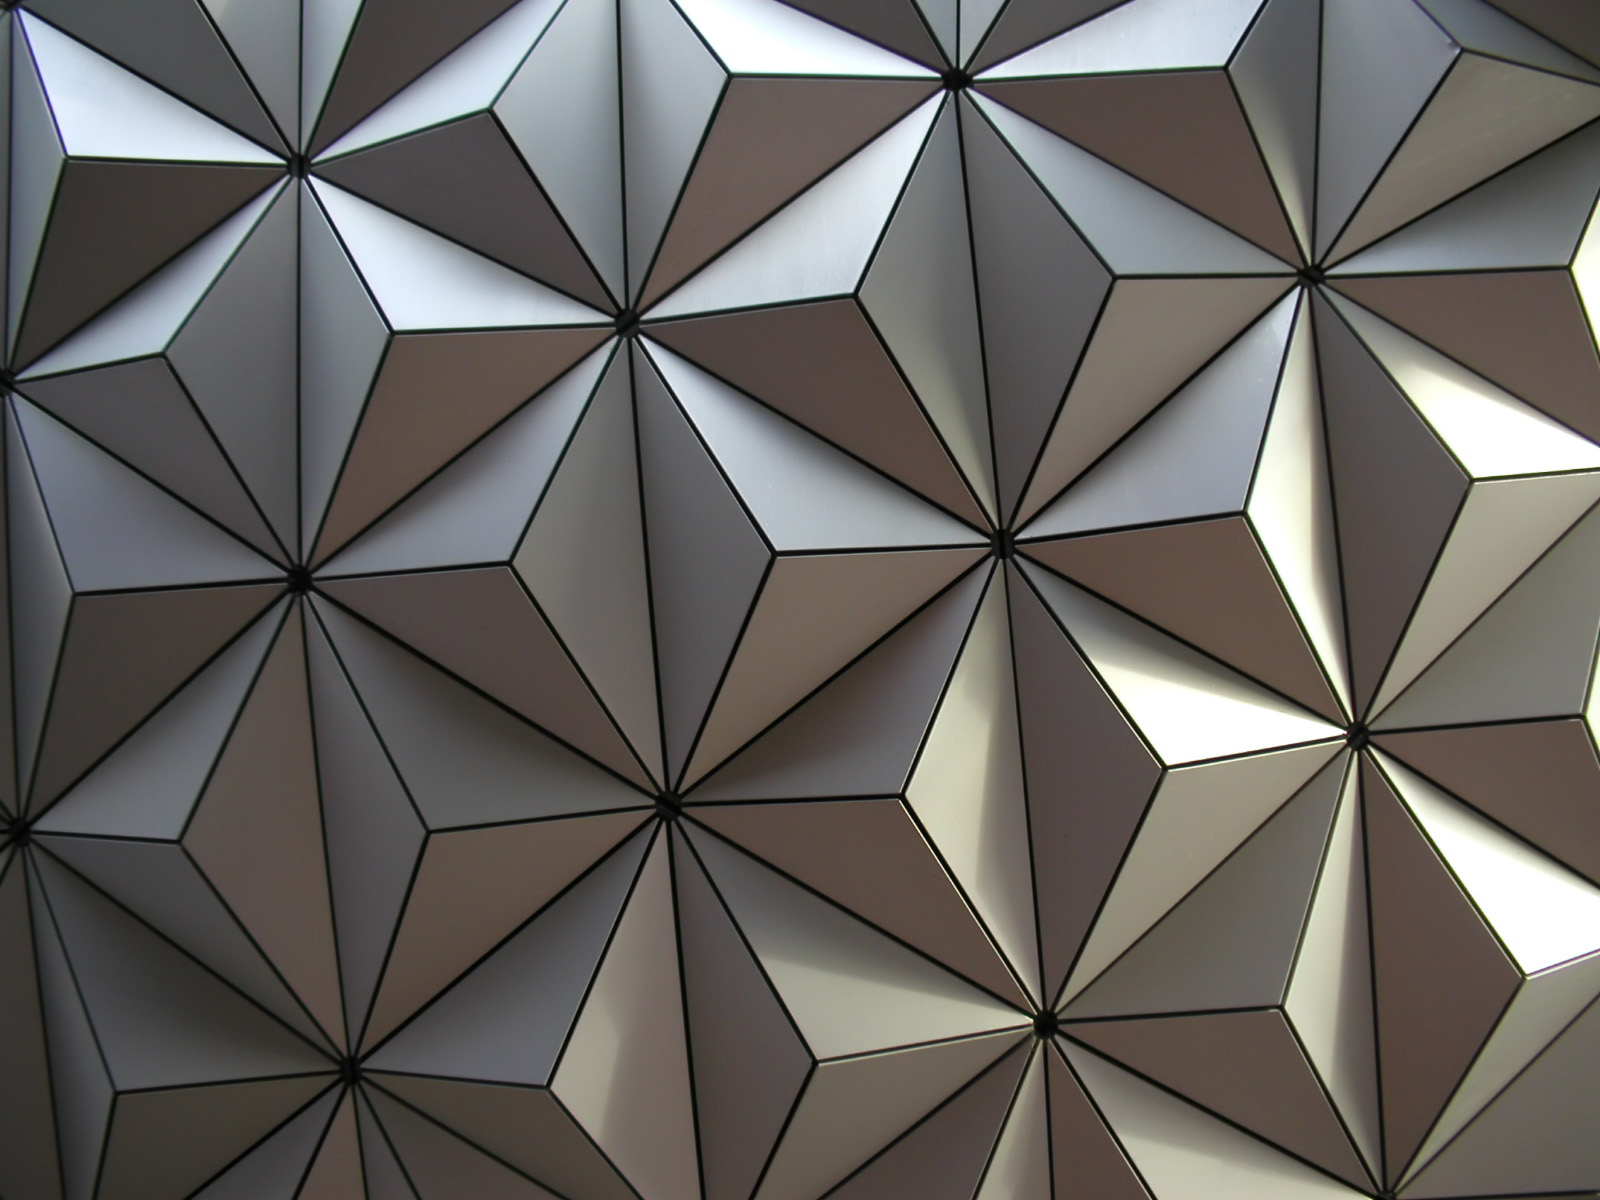 Remarkable Spaceship Earth Tiles 1600 x 1200 · 330 kB · jpeg